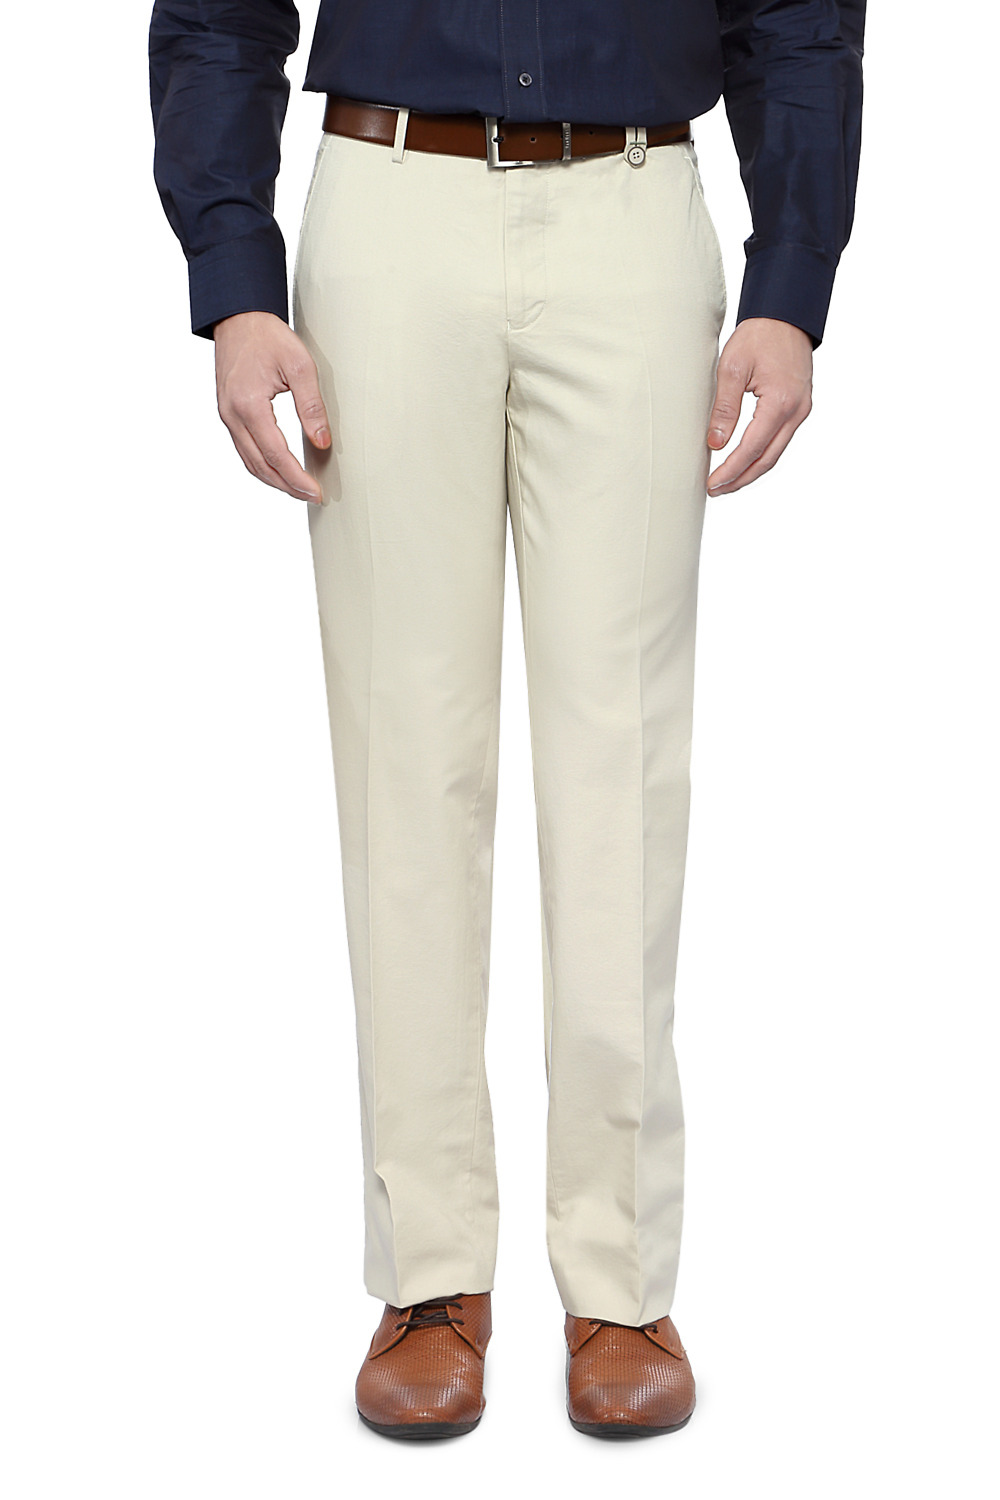 Green wash. Get the trousers look while wearing jeans making this a HOEREV Men Shop Best Sellers · Deals of the Day · Fast Shipping · Read Ratings & Reviews.